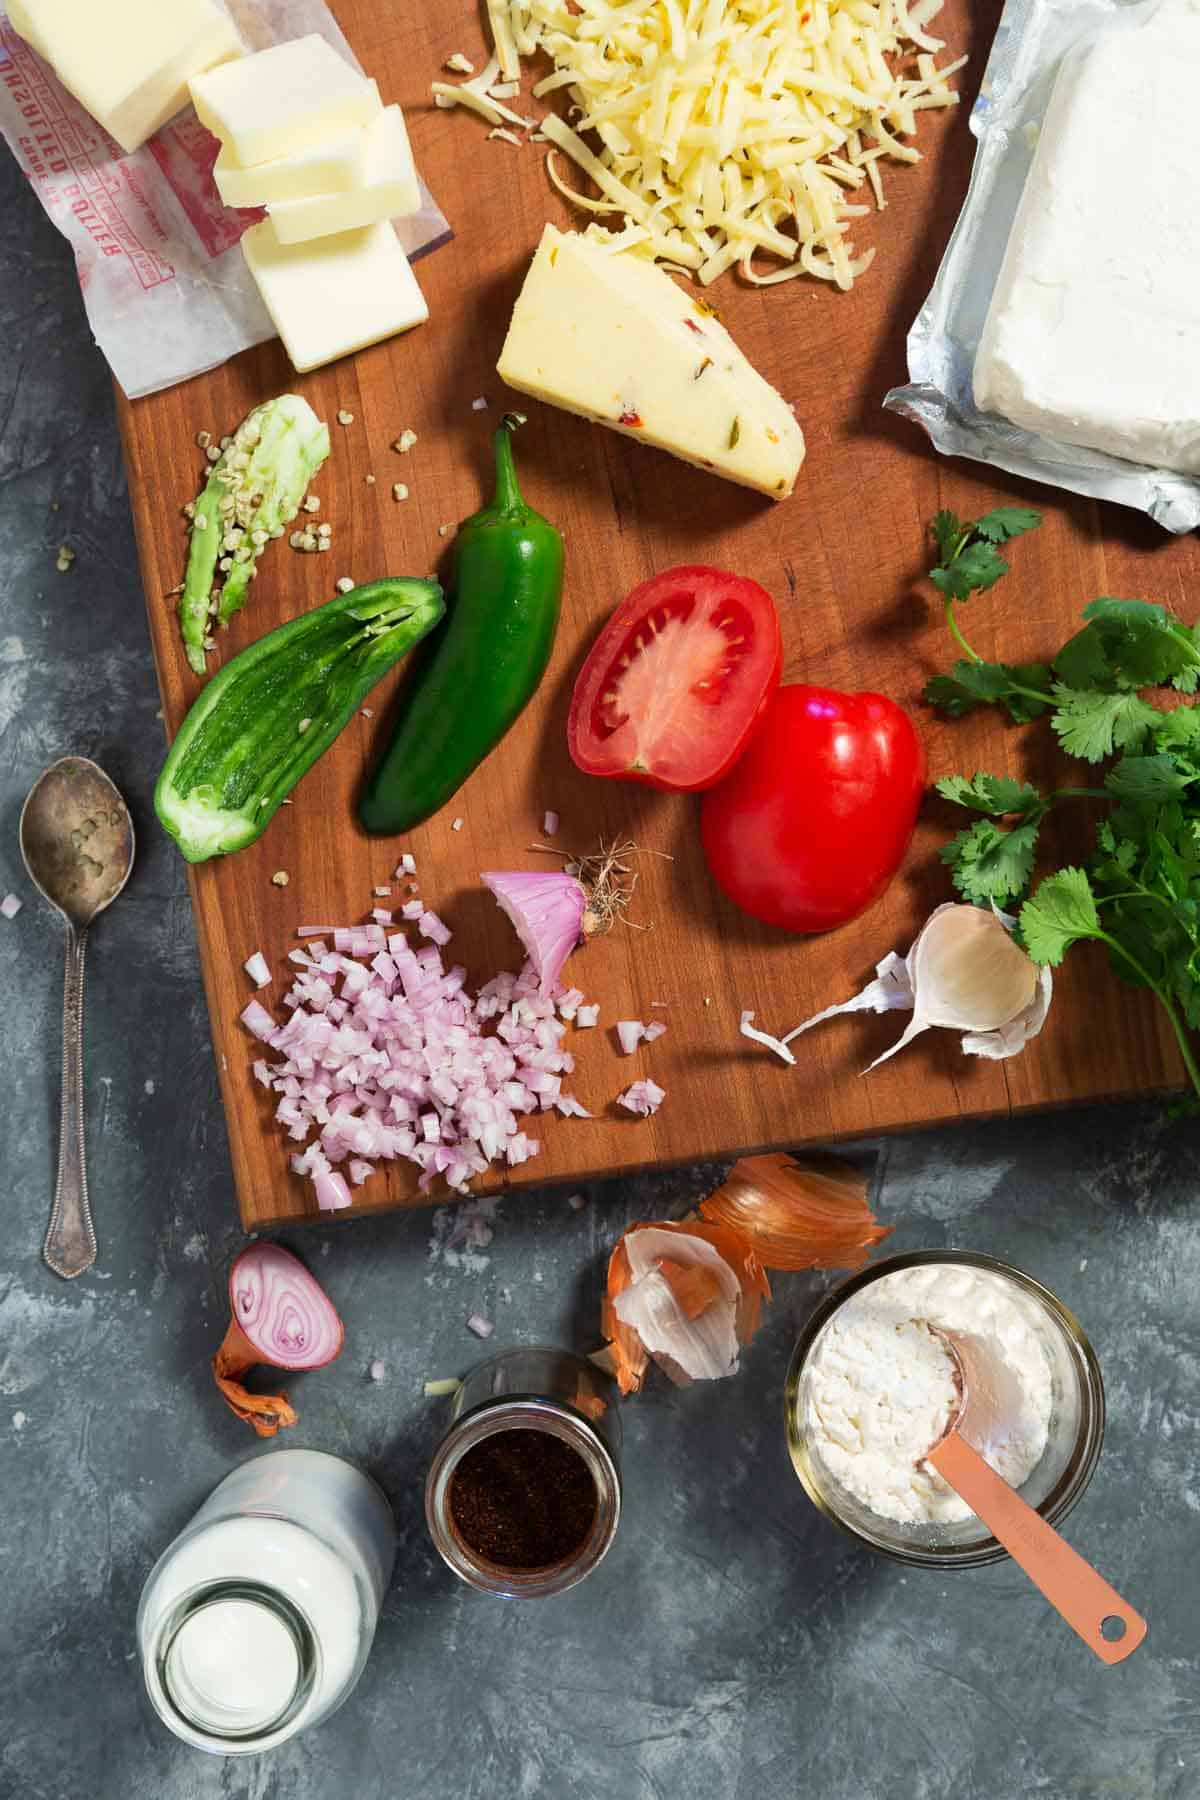 Ingredients for spicy queso dip on a brown cutting board. Chopped onion, jalapeno, cheese, tomato, and cream cheese.